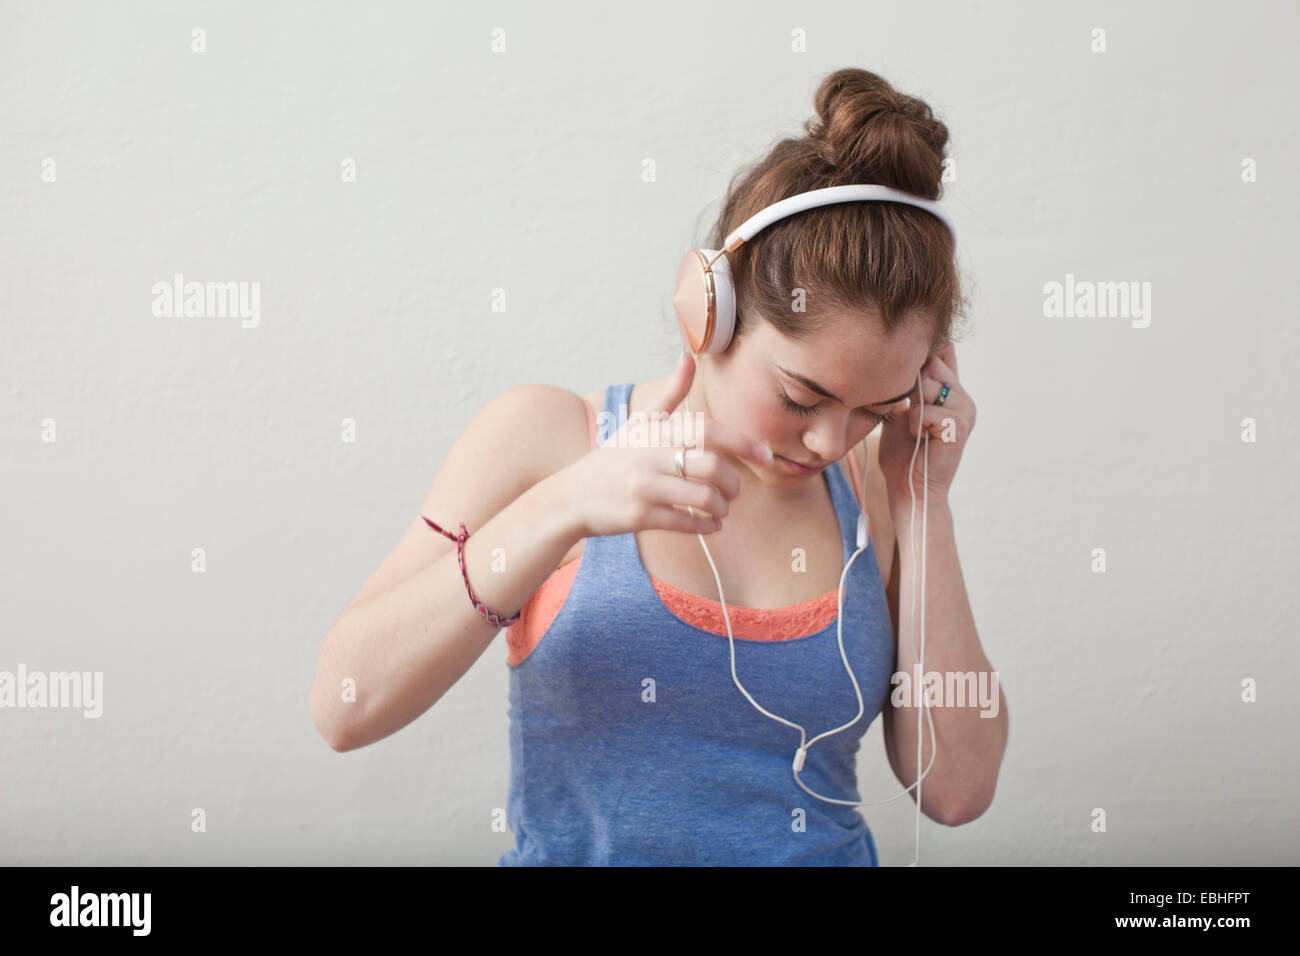 Teenage girl listening to headphones in ballet school - Stock Image